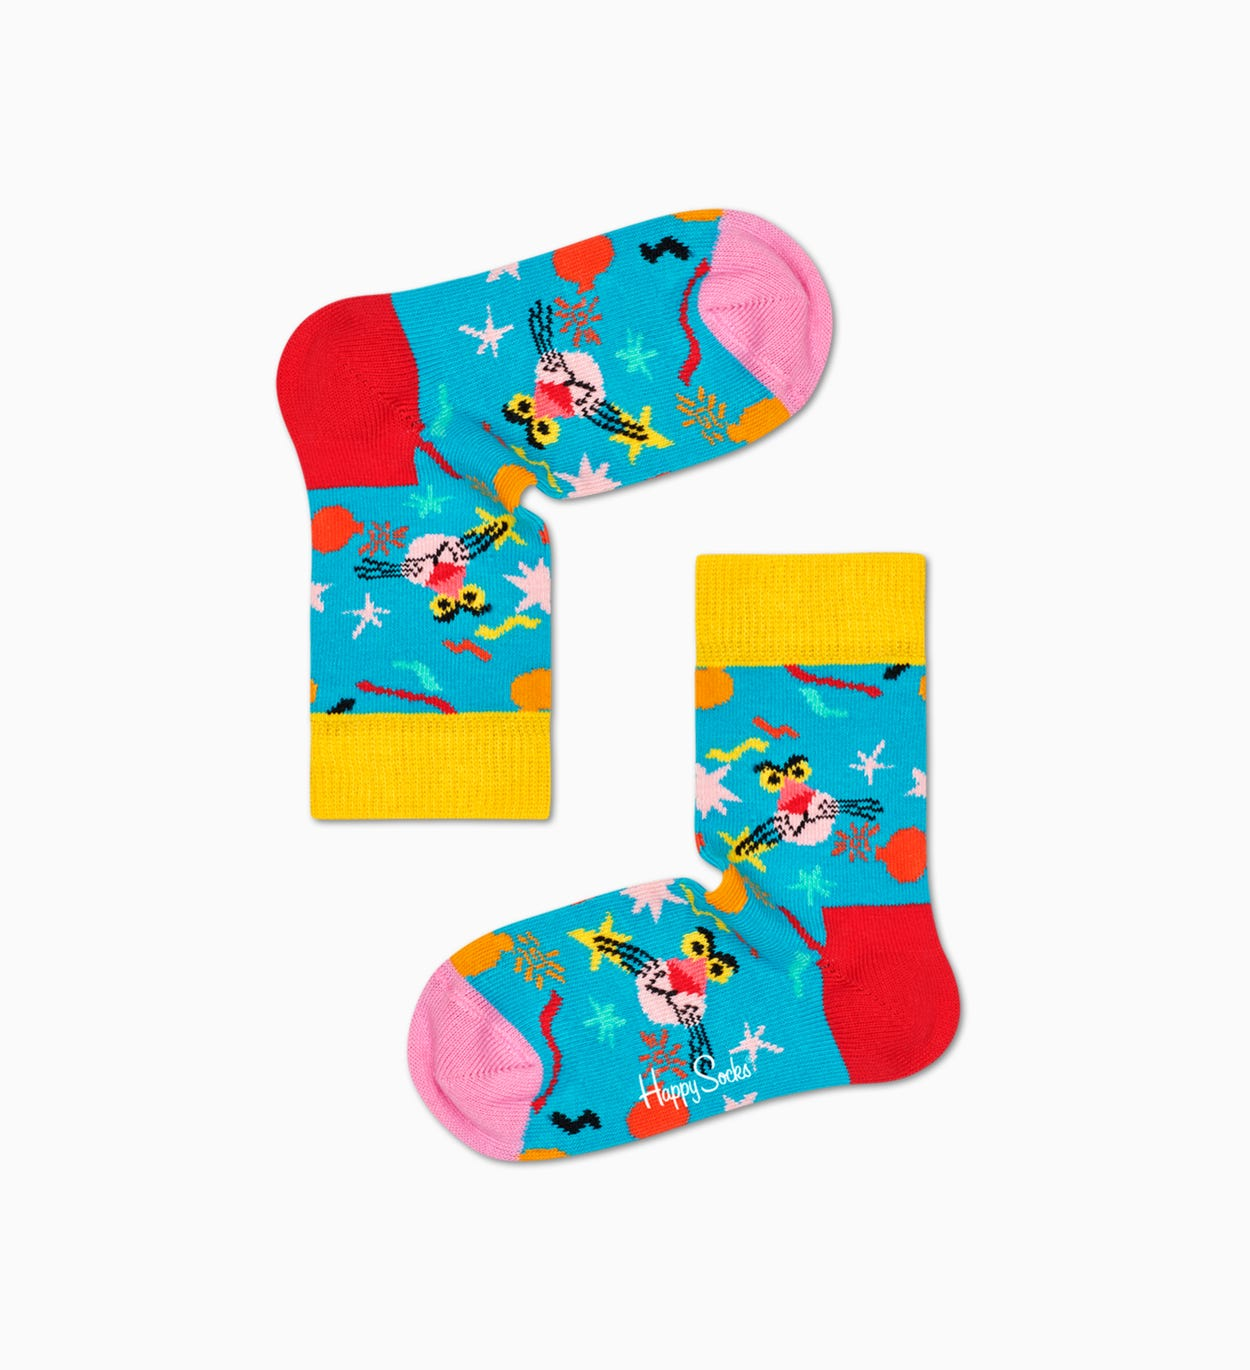 Happy Socks x Pink Panther: Bomb Voyage Kids   Baby Sock